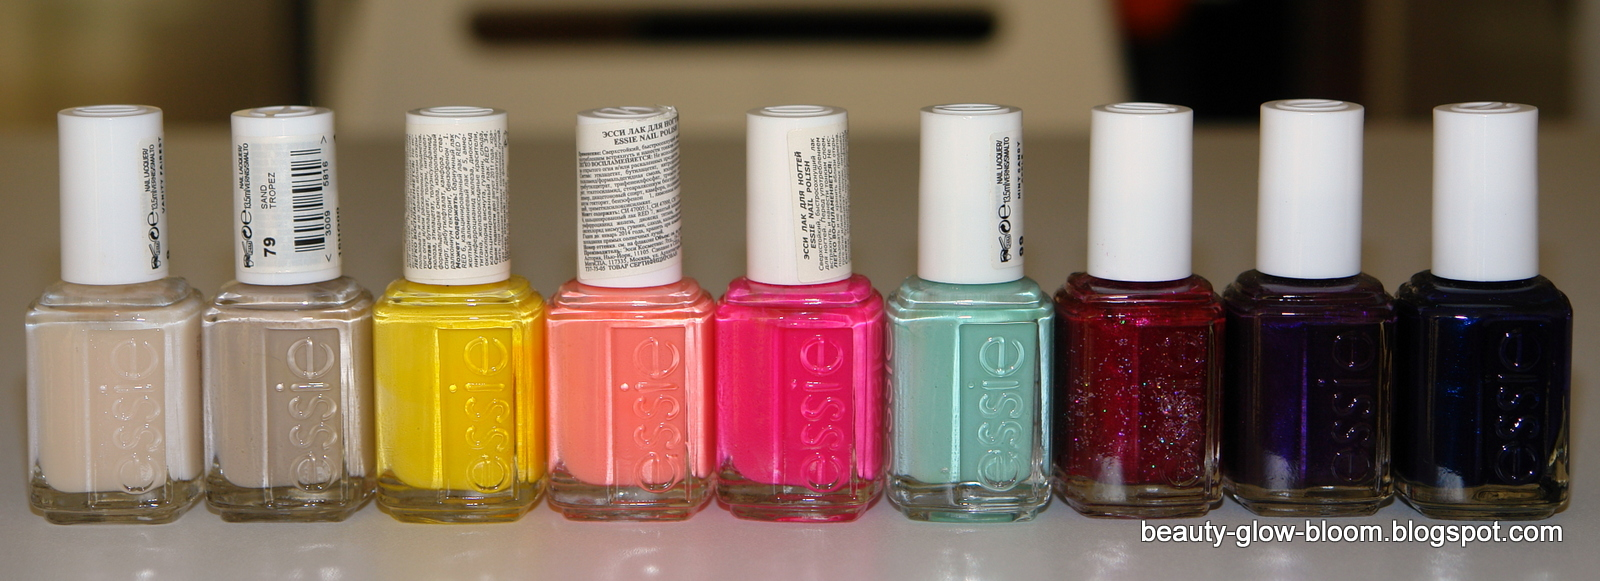 nail polish research paper Nail polish industry analysis introduction and background the us nail polish industry has a total revenue of $11 billion and a profit of $1184 million in 2012, with an annual growth of 23% in 2007-2012 and a projected annual growth of 33% from 2012-2017 (panteva).